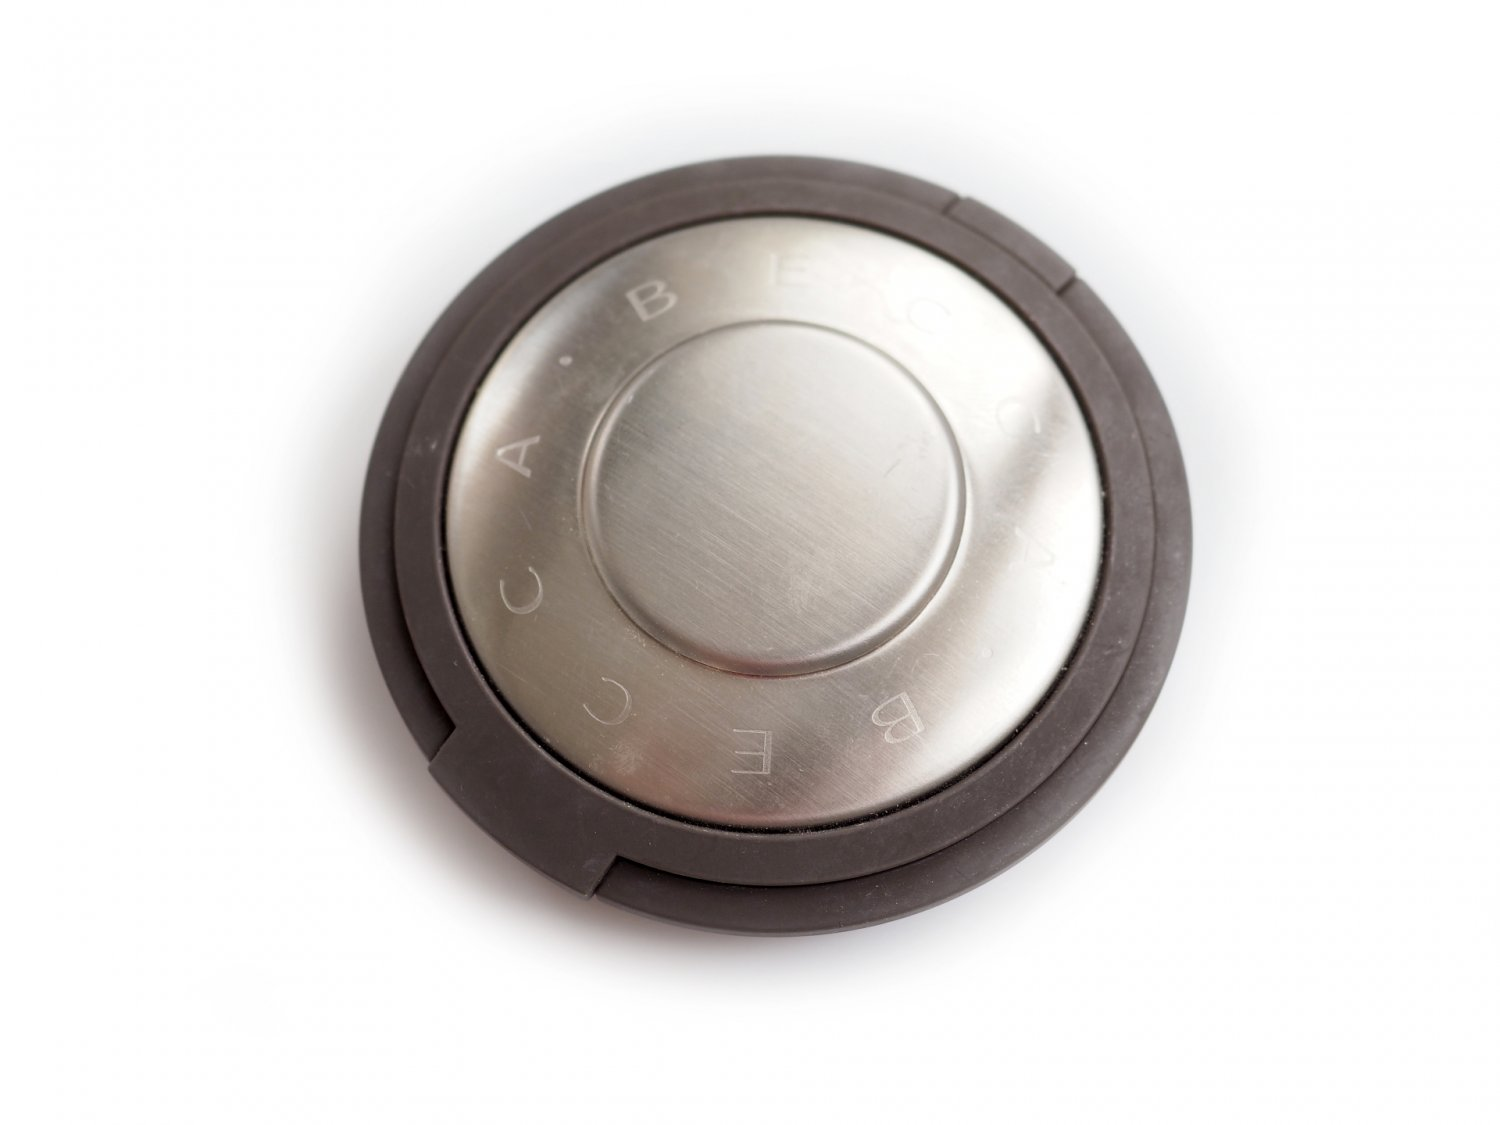 Becca Moonstone Shimmering Skin Perfector